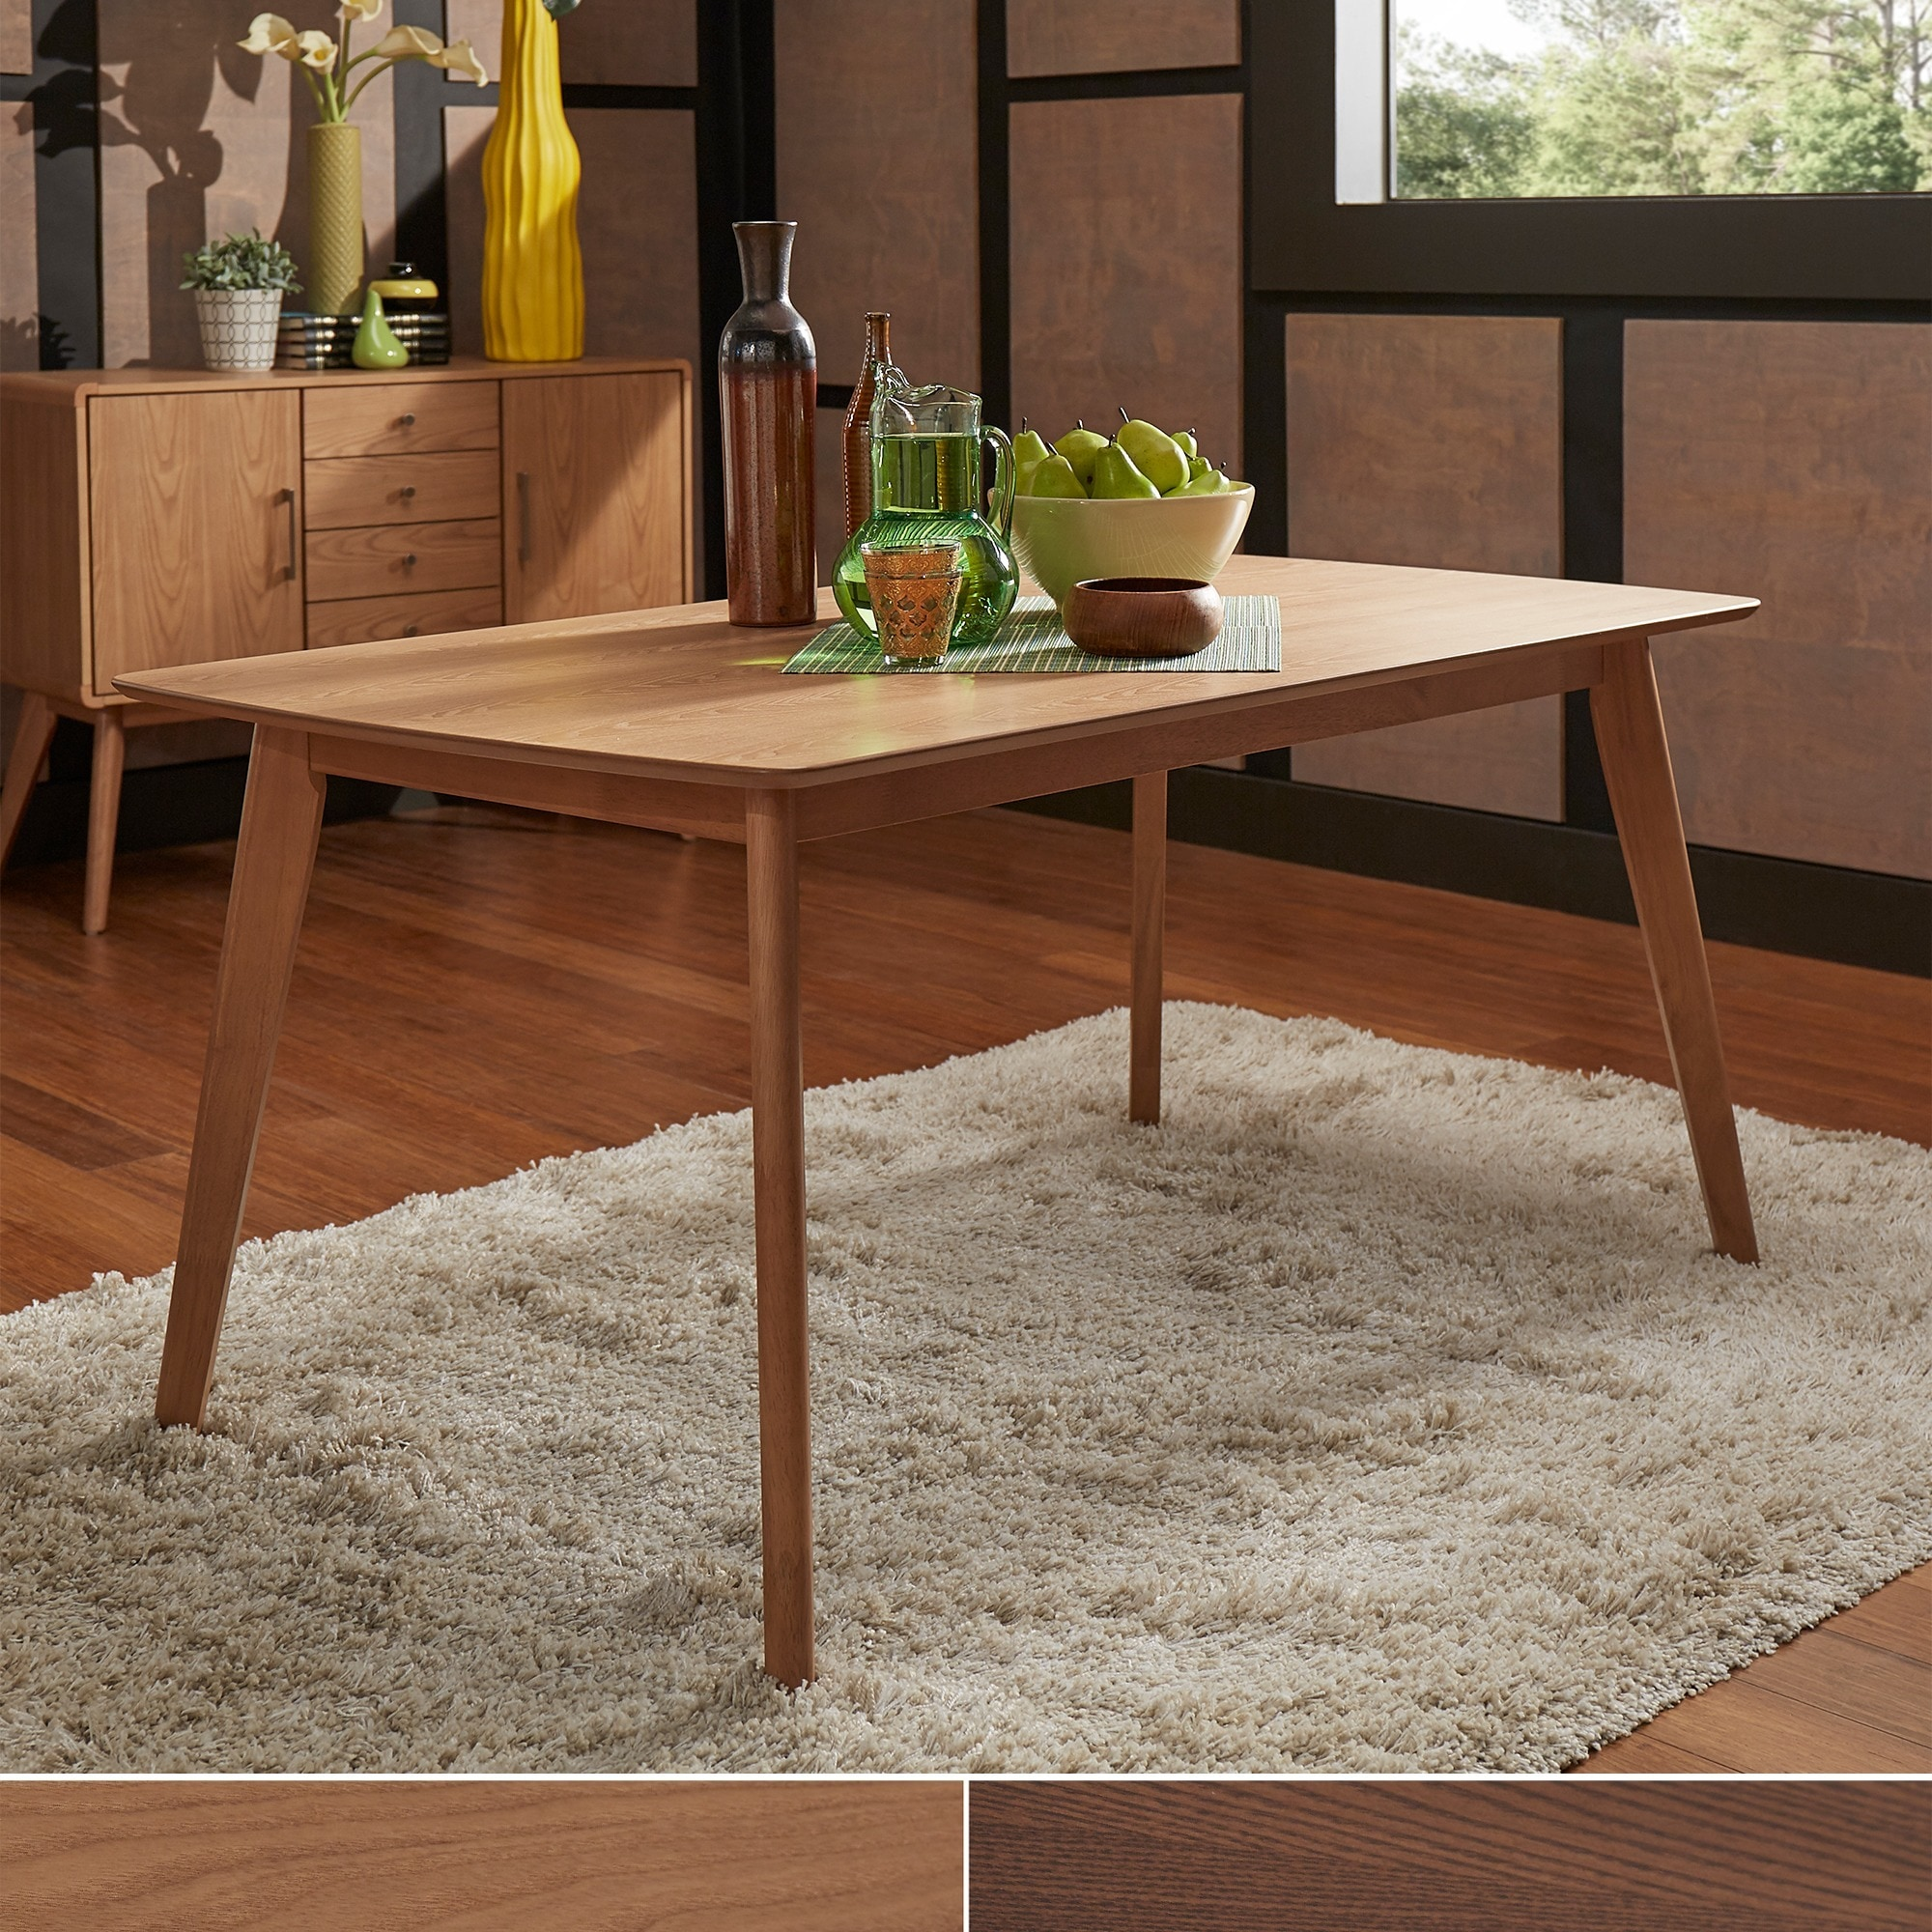 Penelope Danish Modern Tapered-leg Dining Table iNSPIRE Q Modern - Free  Shipping Today - Overstock.com - 18715928